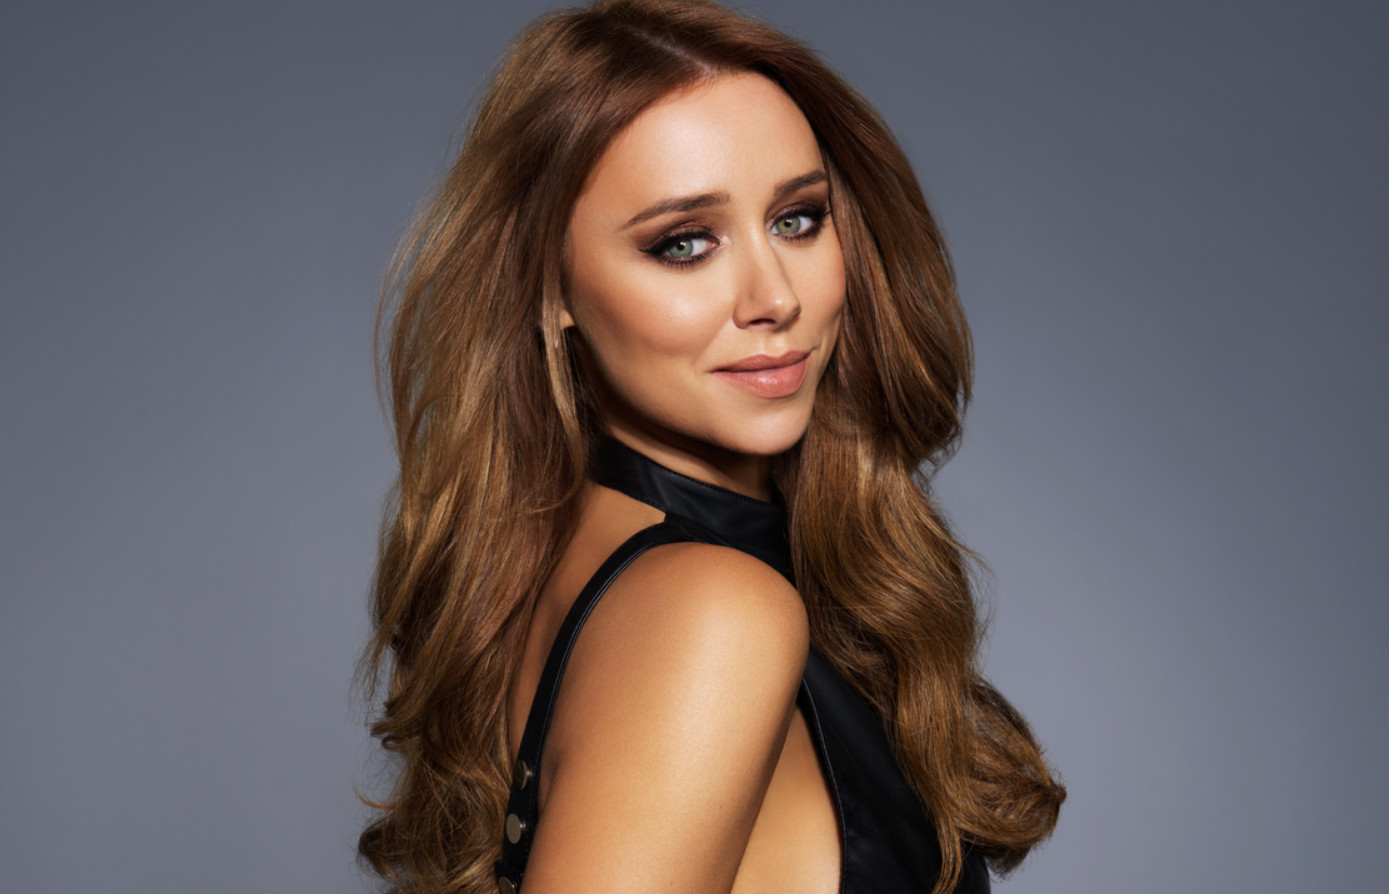 Singer-songwriter Una Healy is a shark in the water